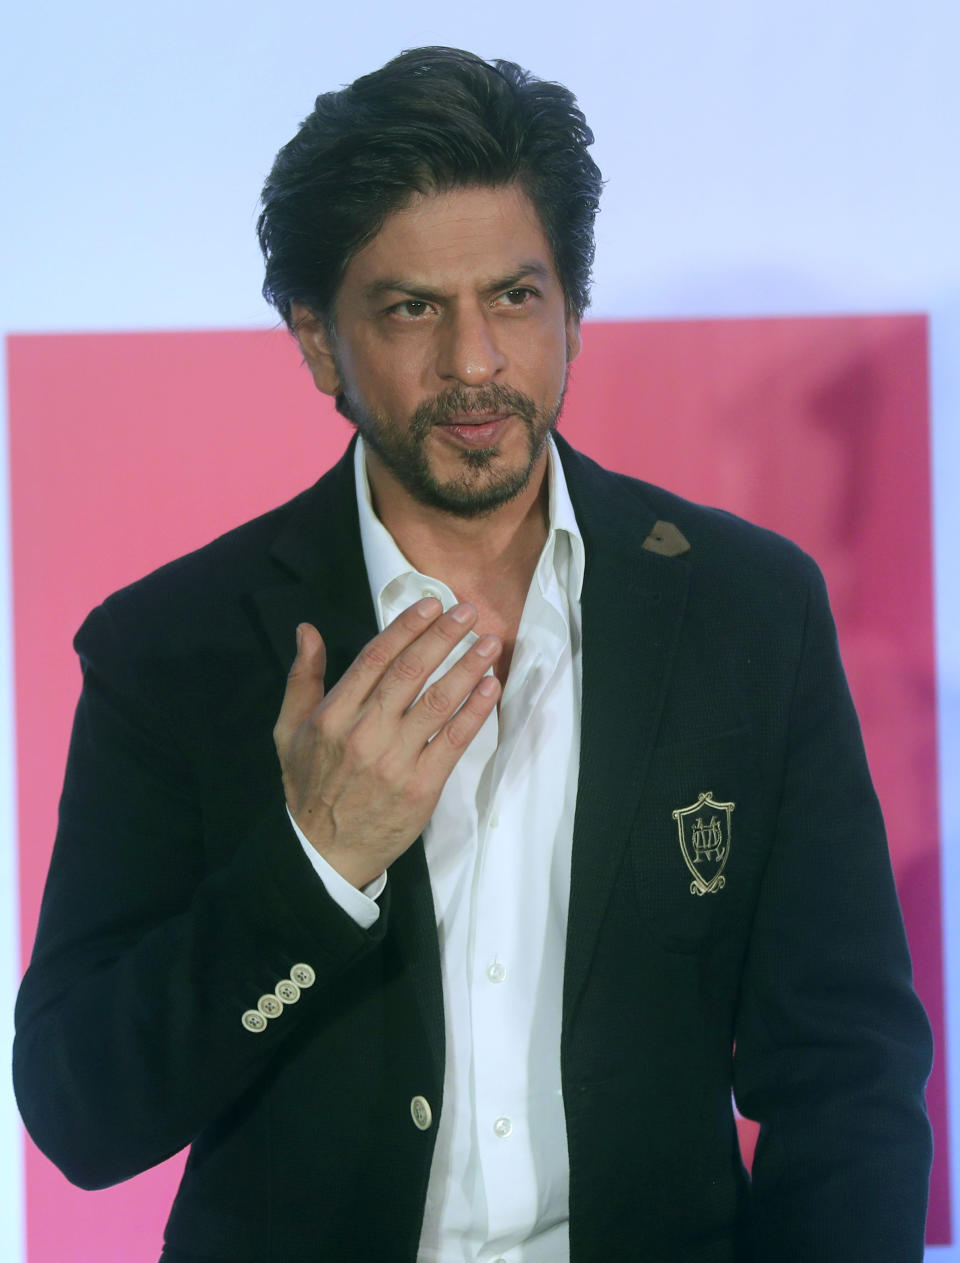 We will have bigger, better party next year: Shah Rukh Khan on turning 55